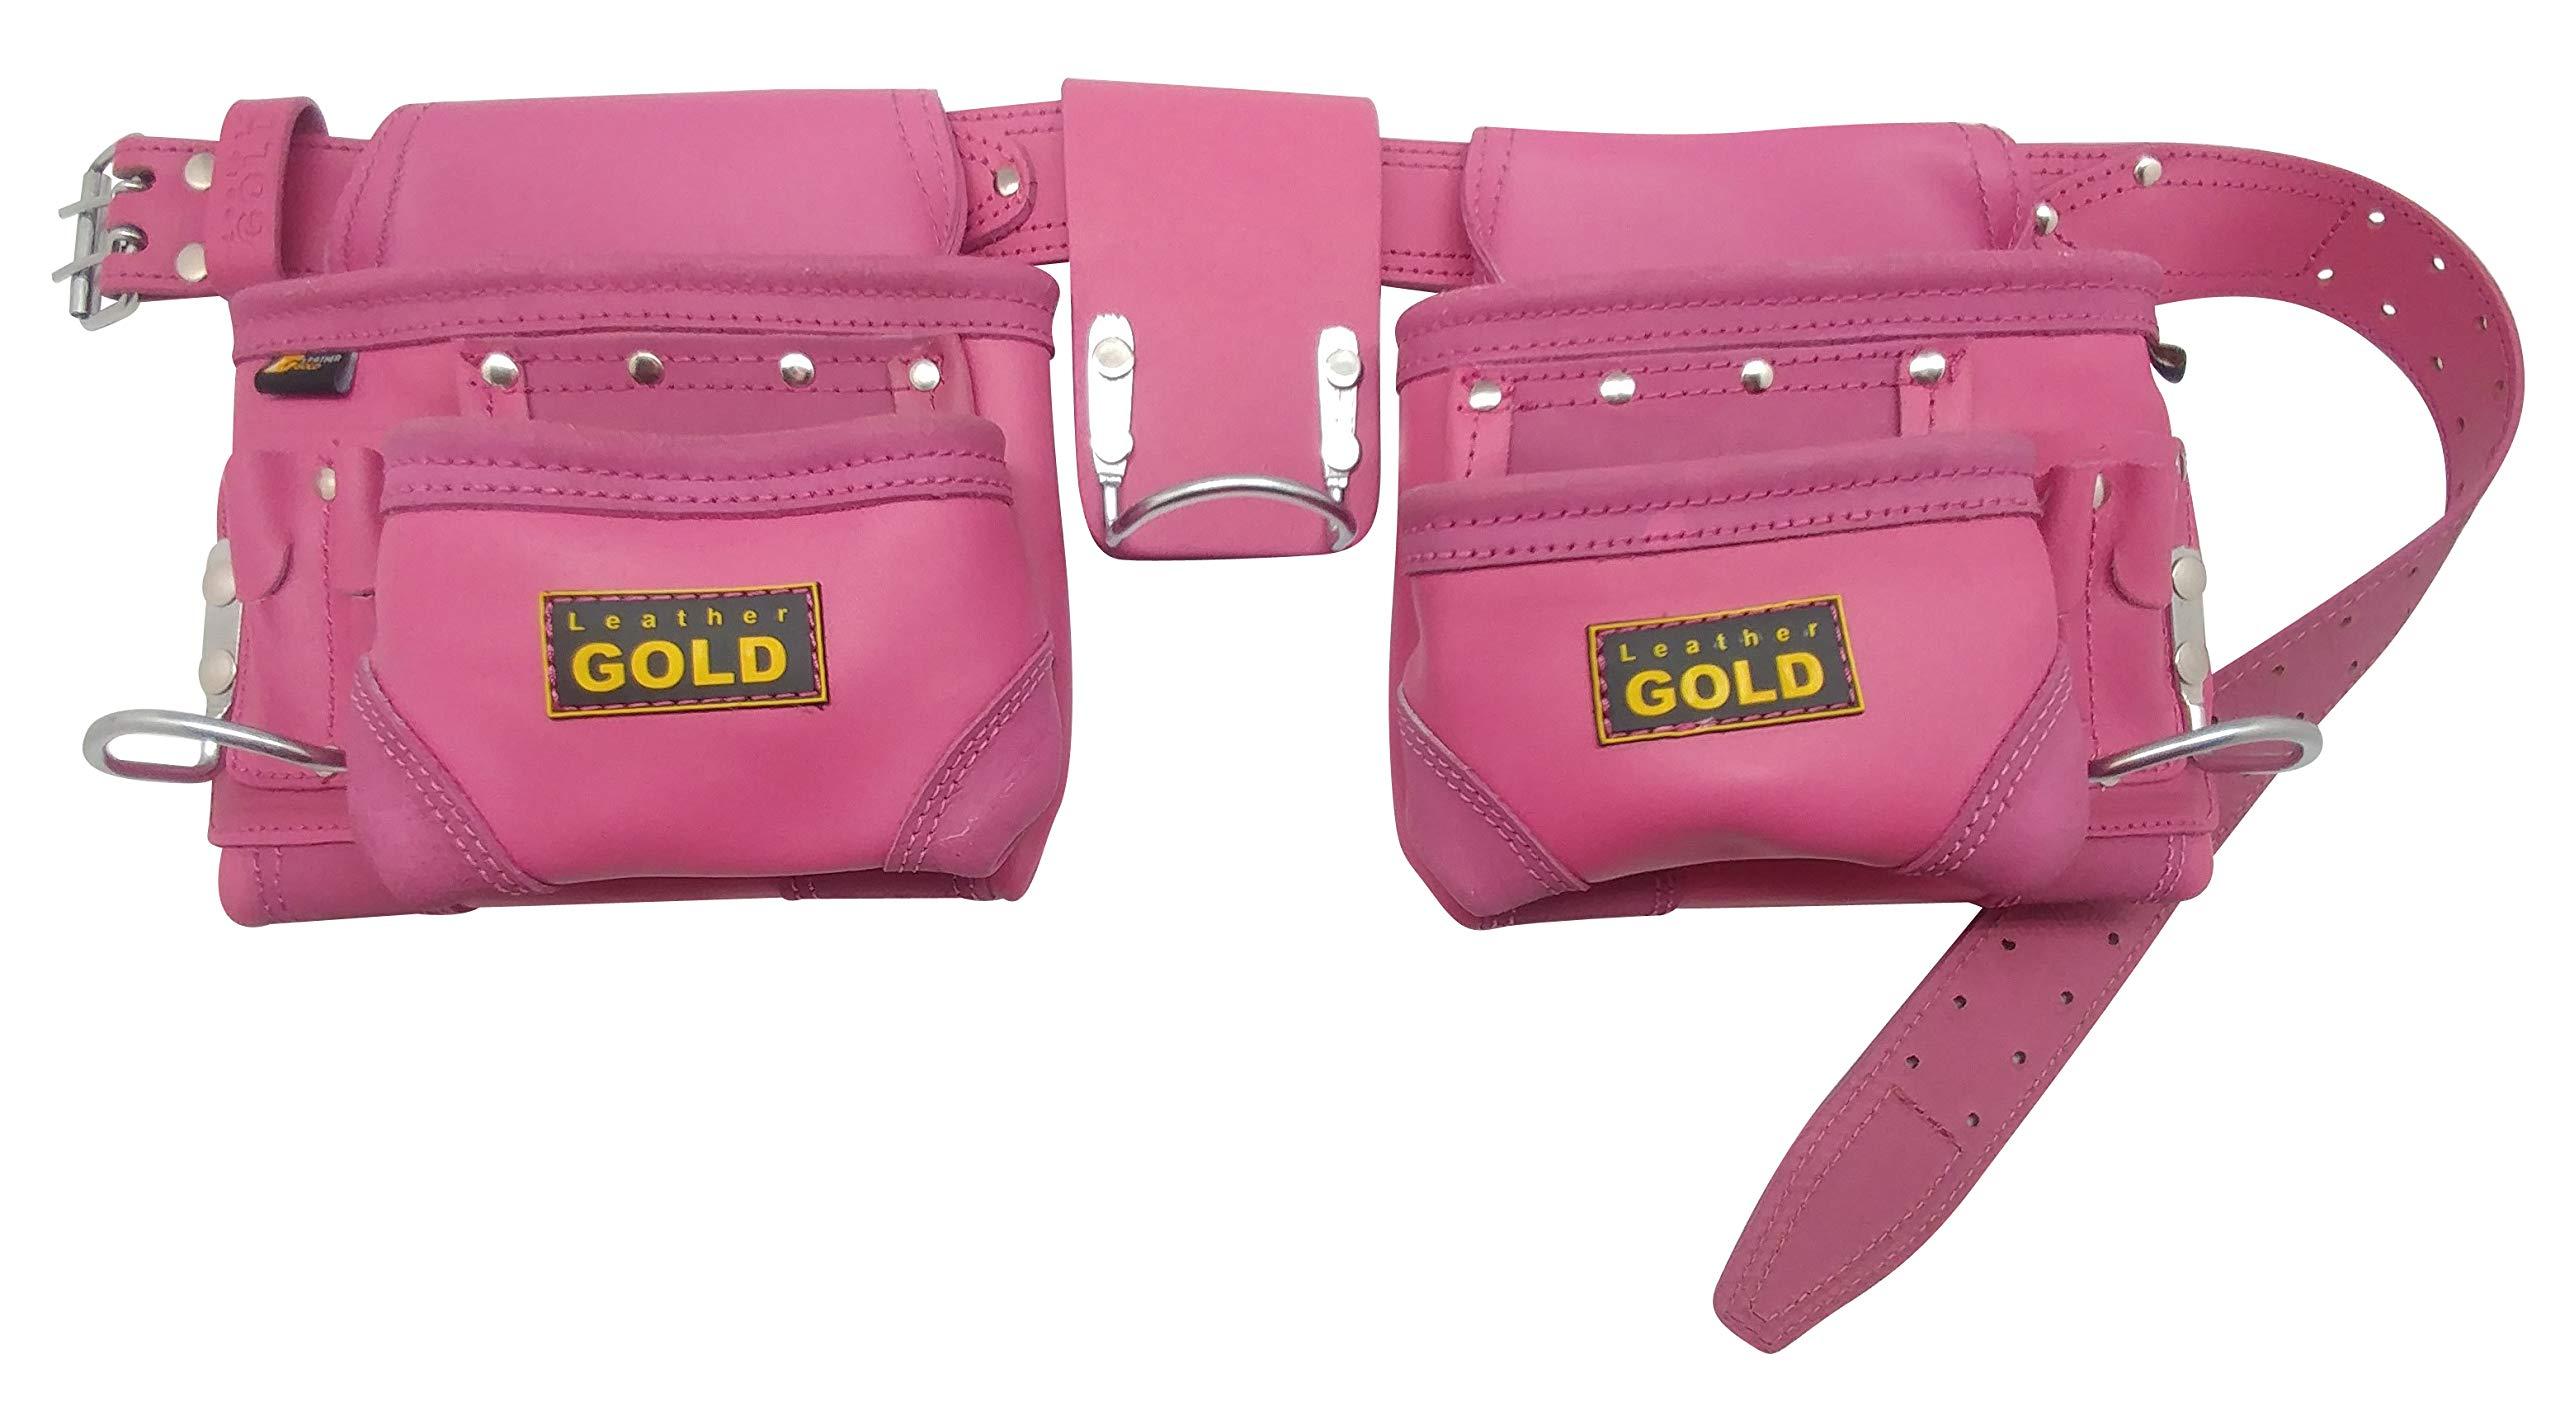 Leather Gold Tool Belt for Women | Womens Pink Tool Belt 3450 | Natural Leather | The 10 Pouches and 3 Hammer Holders are Easily Adjustable | Professional Grade | Durable, Comfortable for All Day Wear by Leather Gold